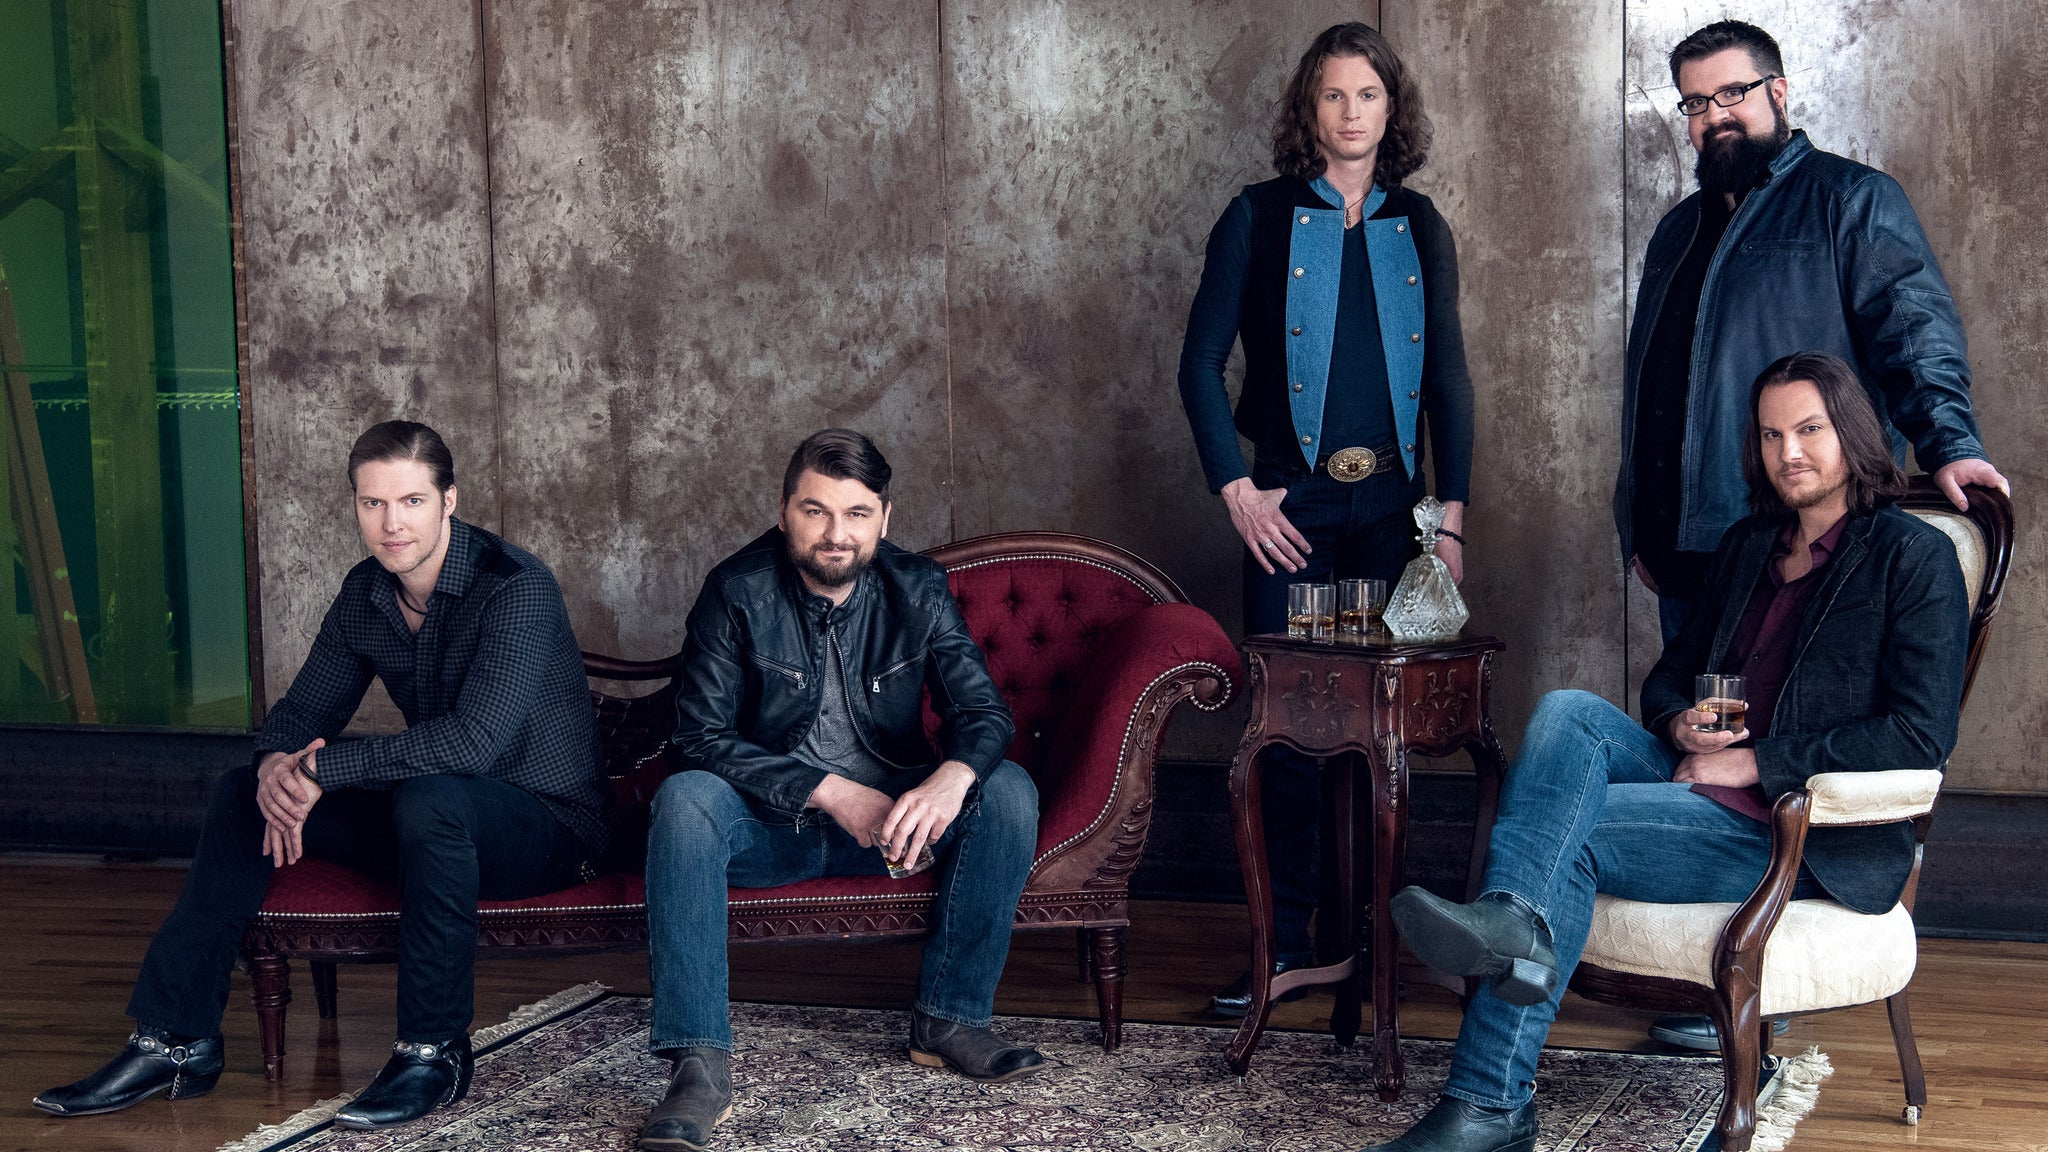 Home Free at McCain Auditorium